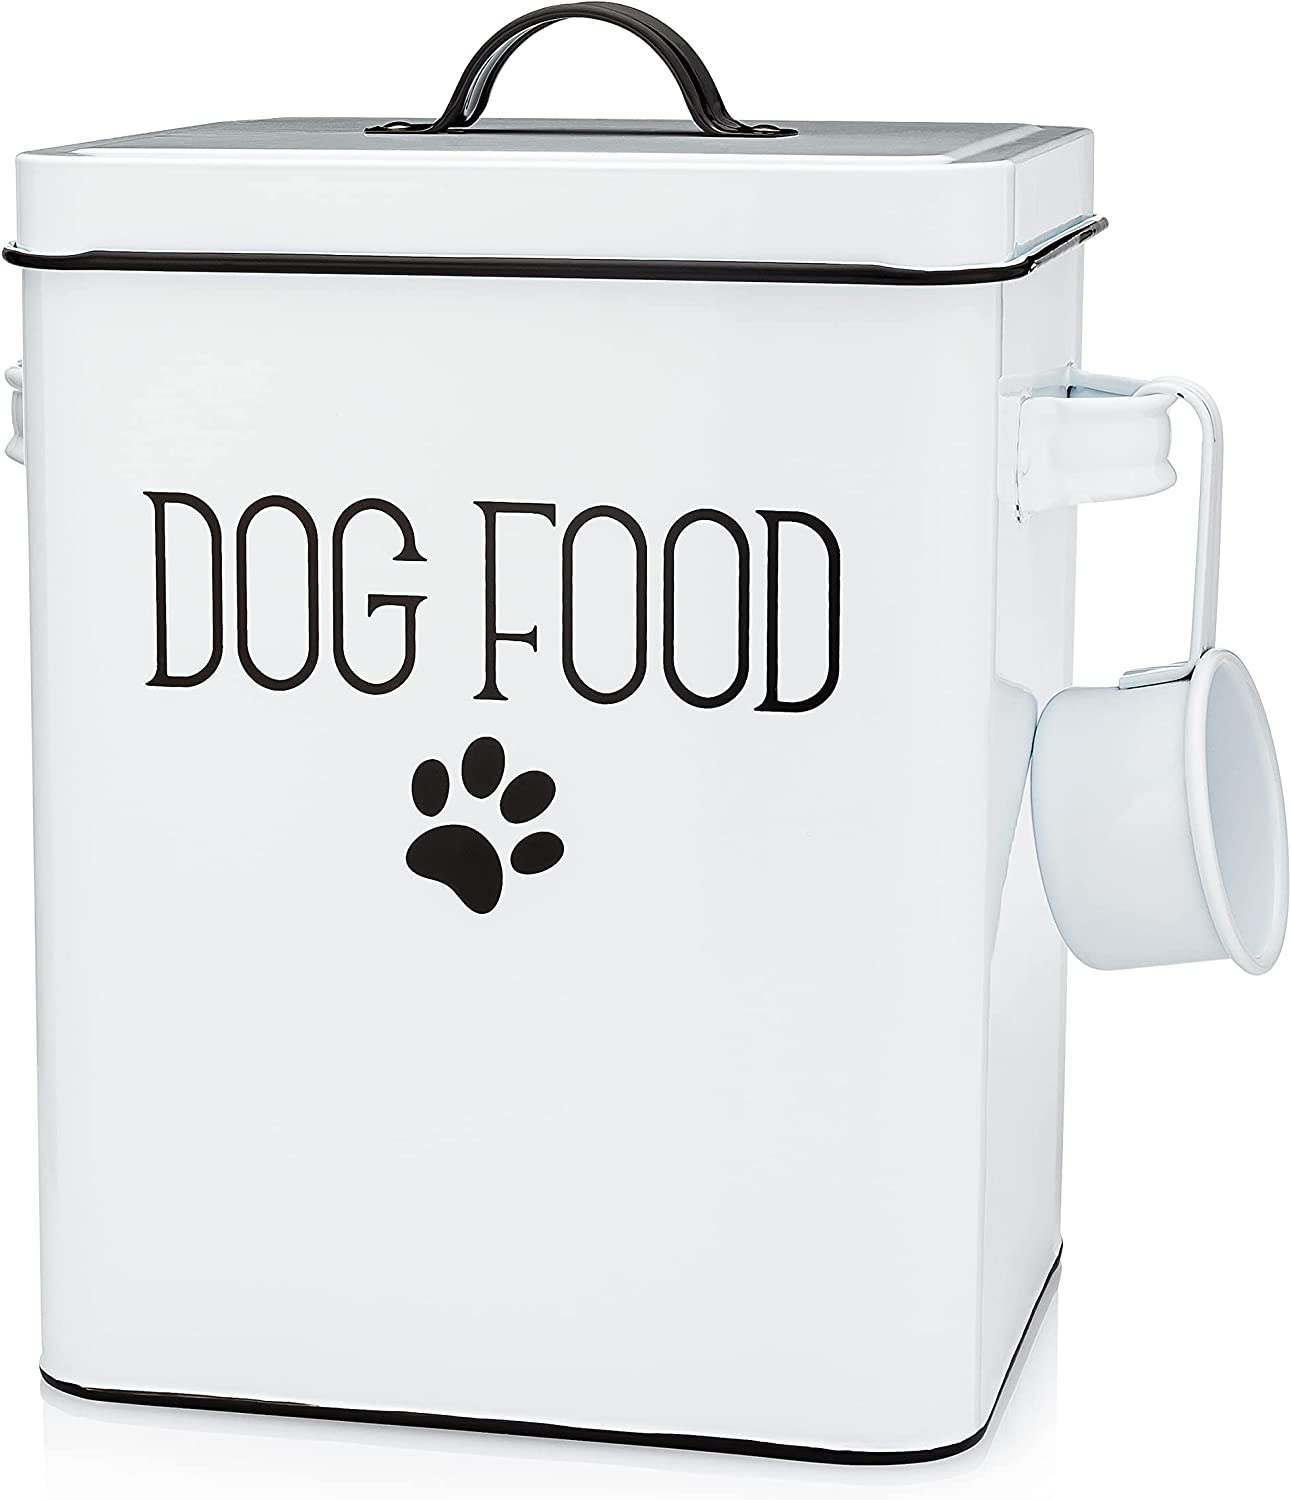 White Dog Food Storage Container Plus Dog Food Scoop - Farmhouse Dog Food Container - Durable Dog Food Storage - Dog Food Bin - Stylish Pet Food Storage Tin Canister - Pet Food and Treat Container